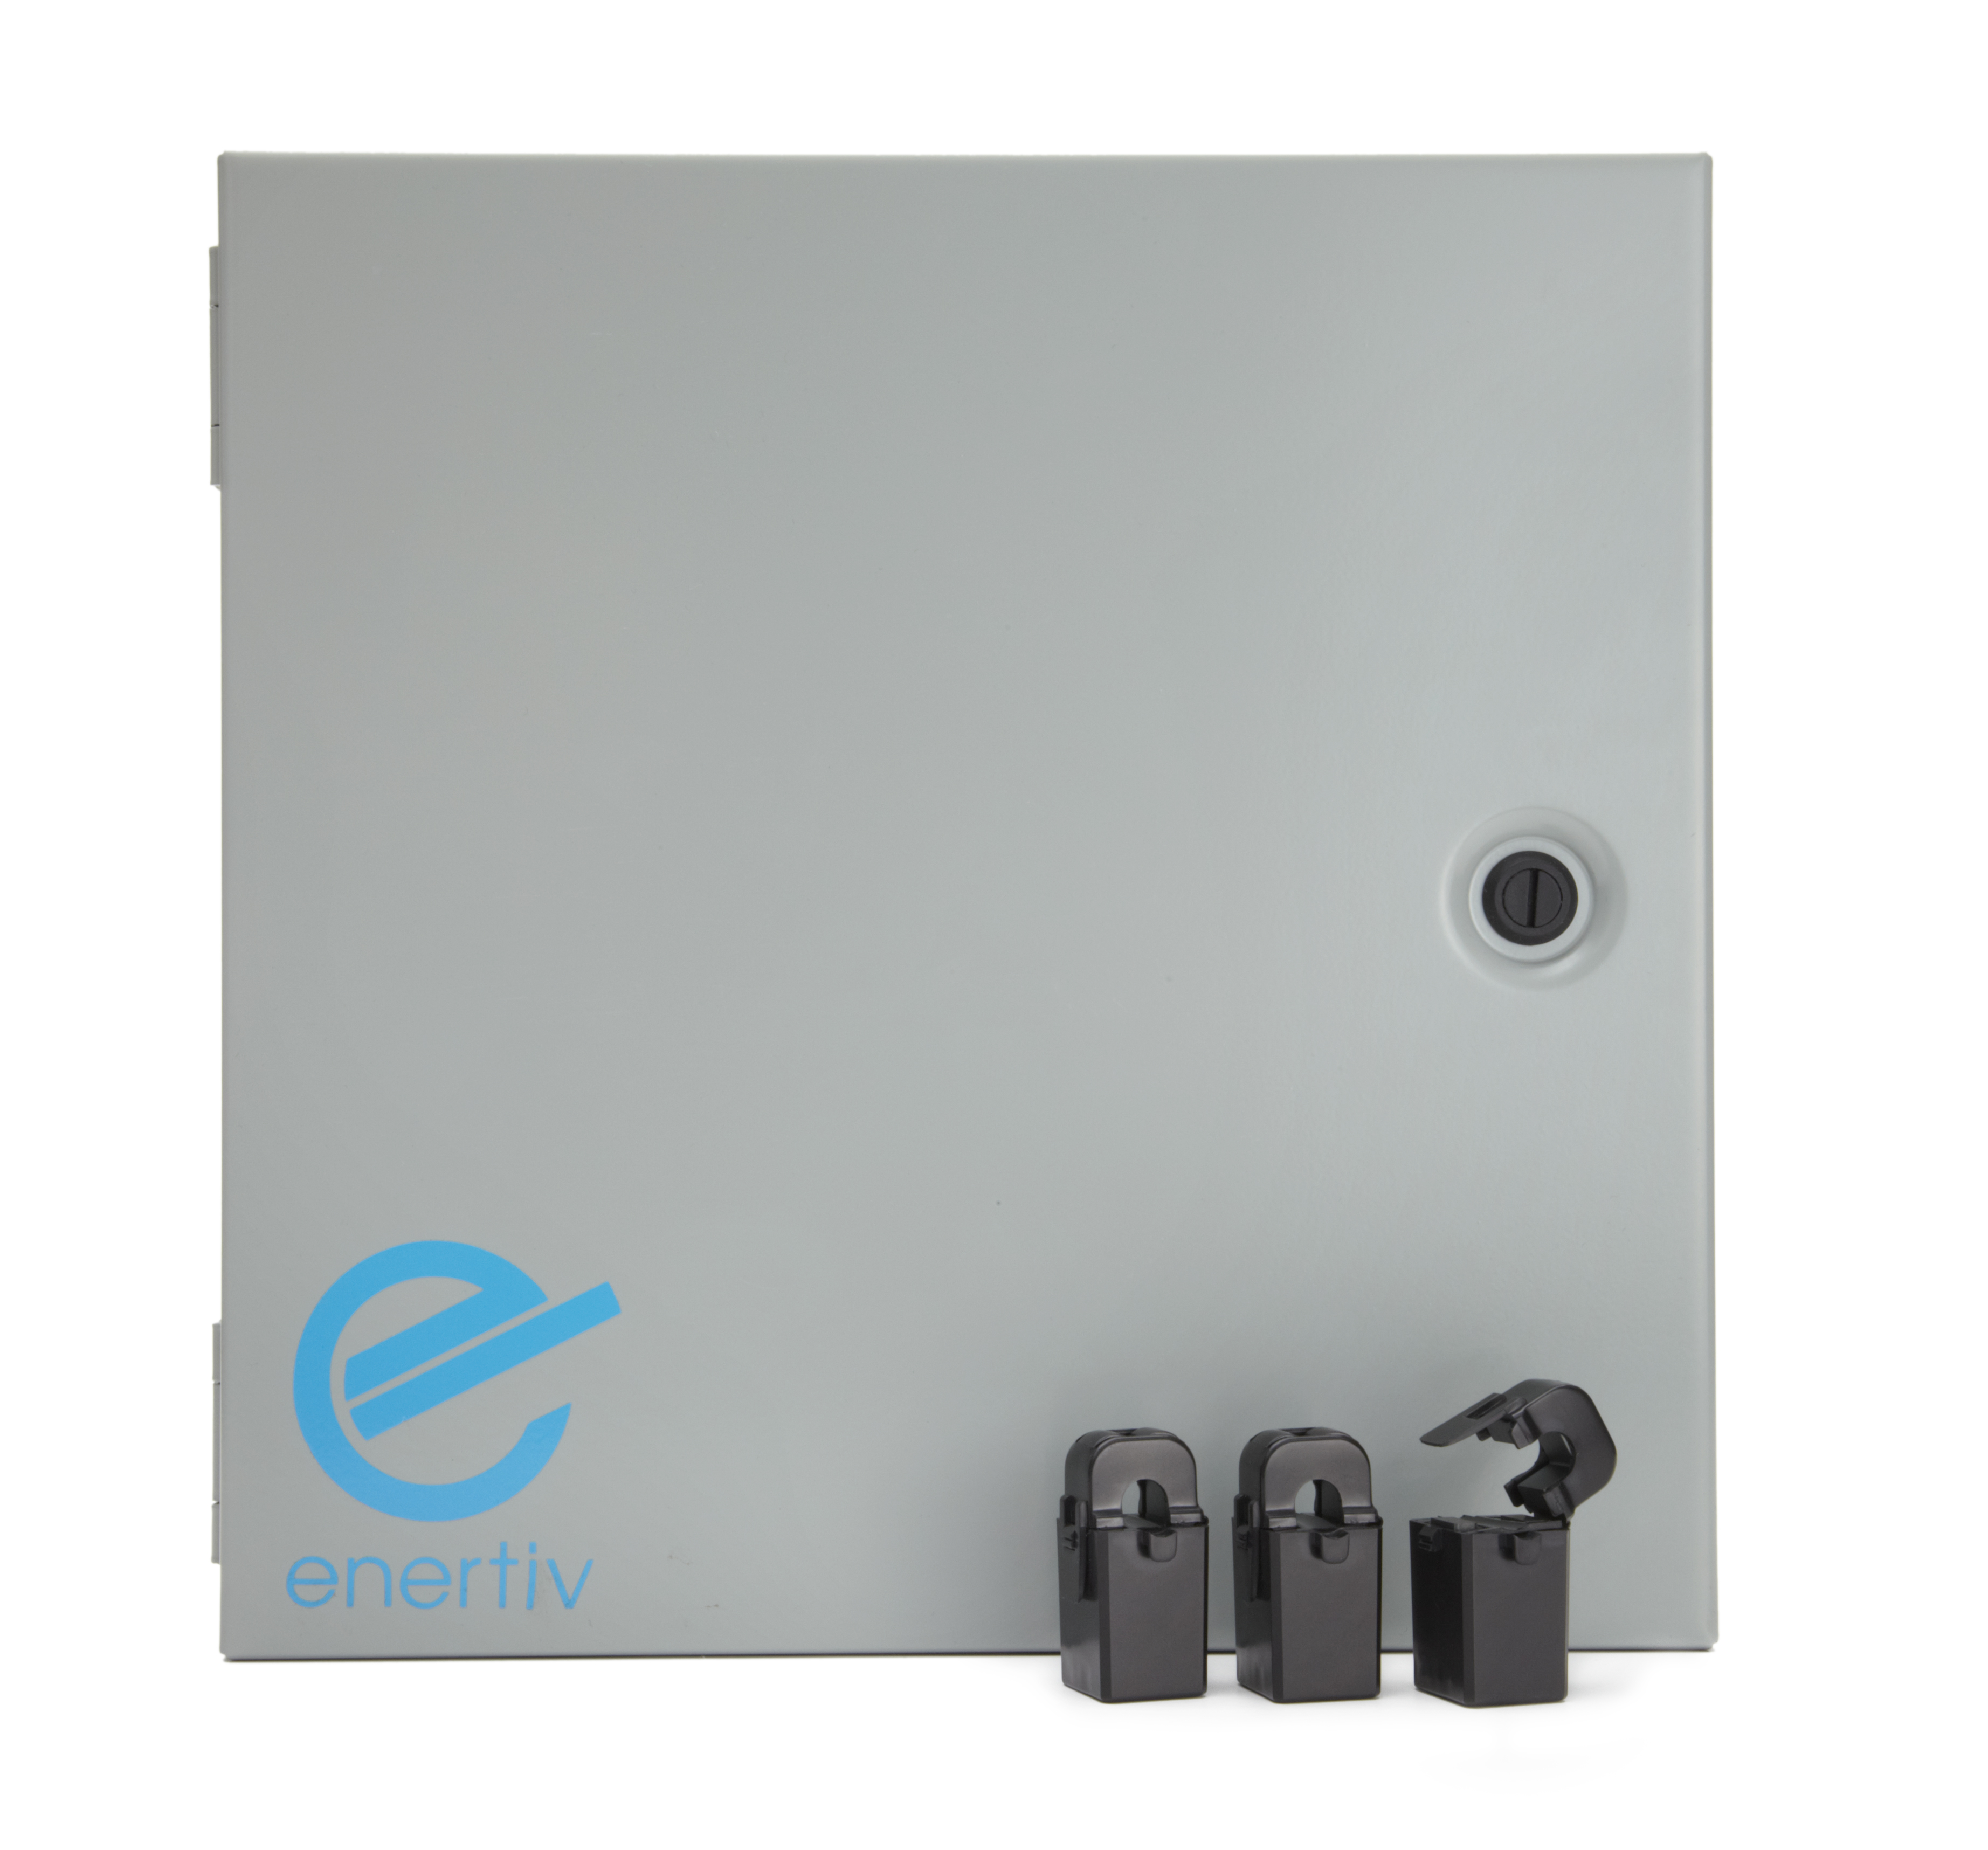 This is the Enertiv hardware that is installed by your breaker box.